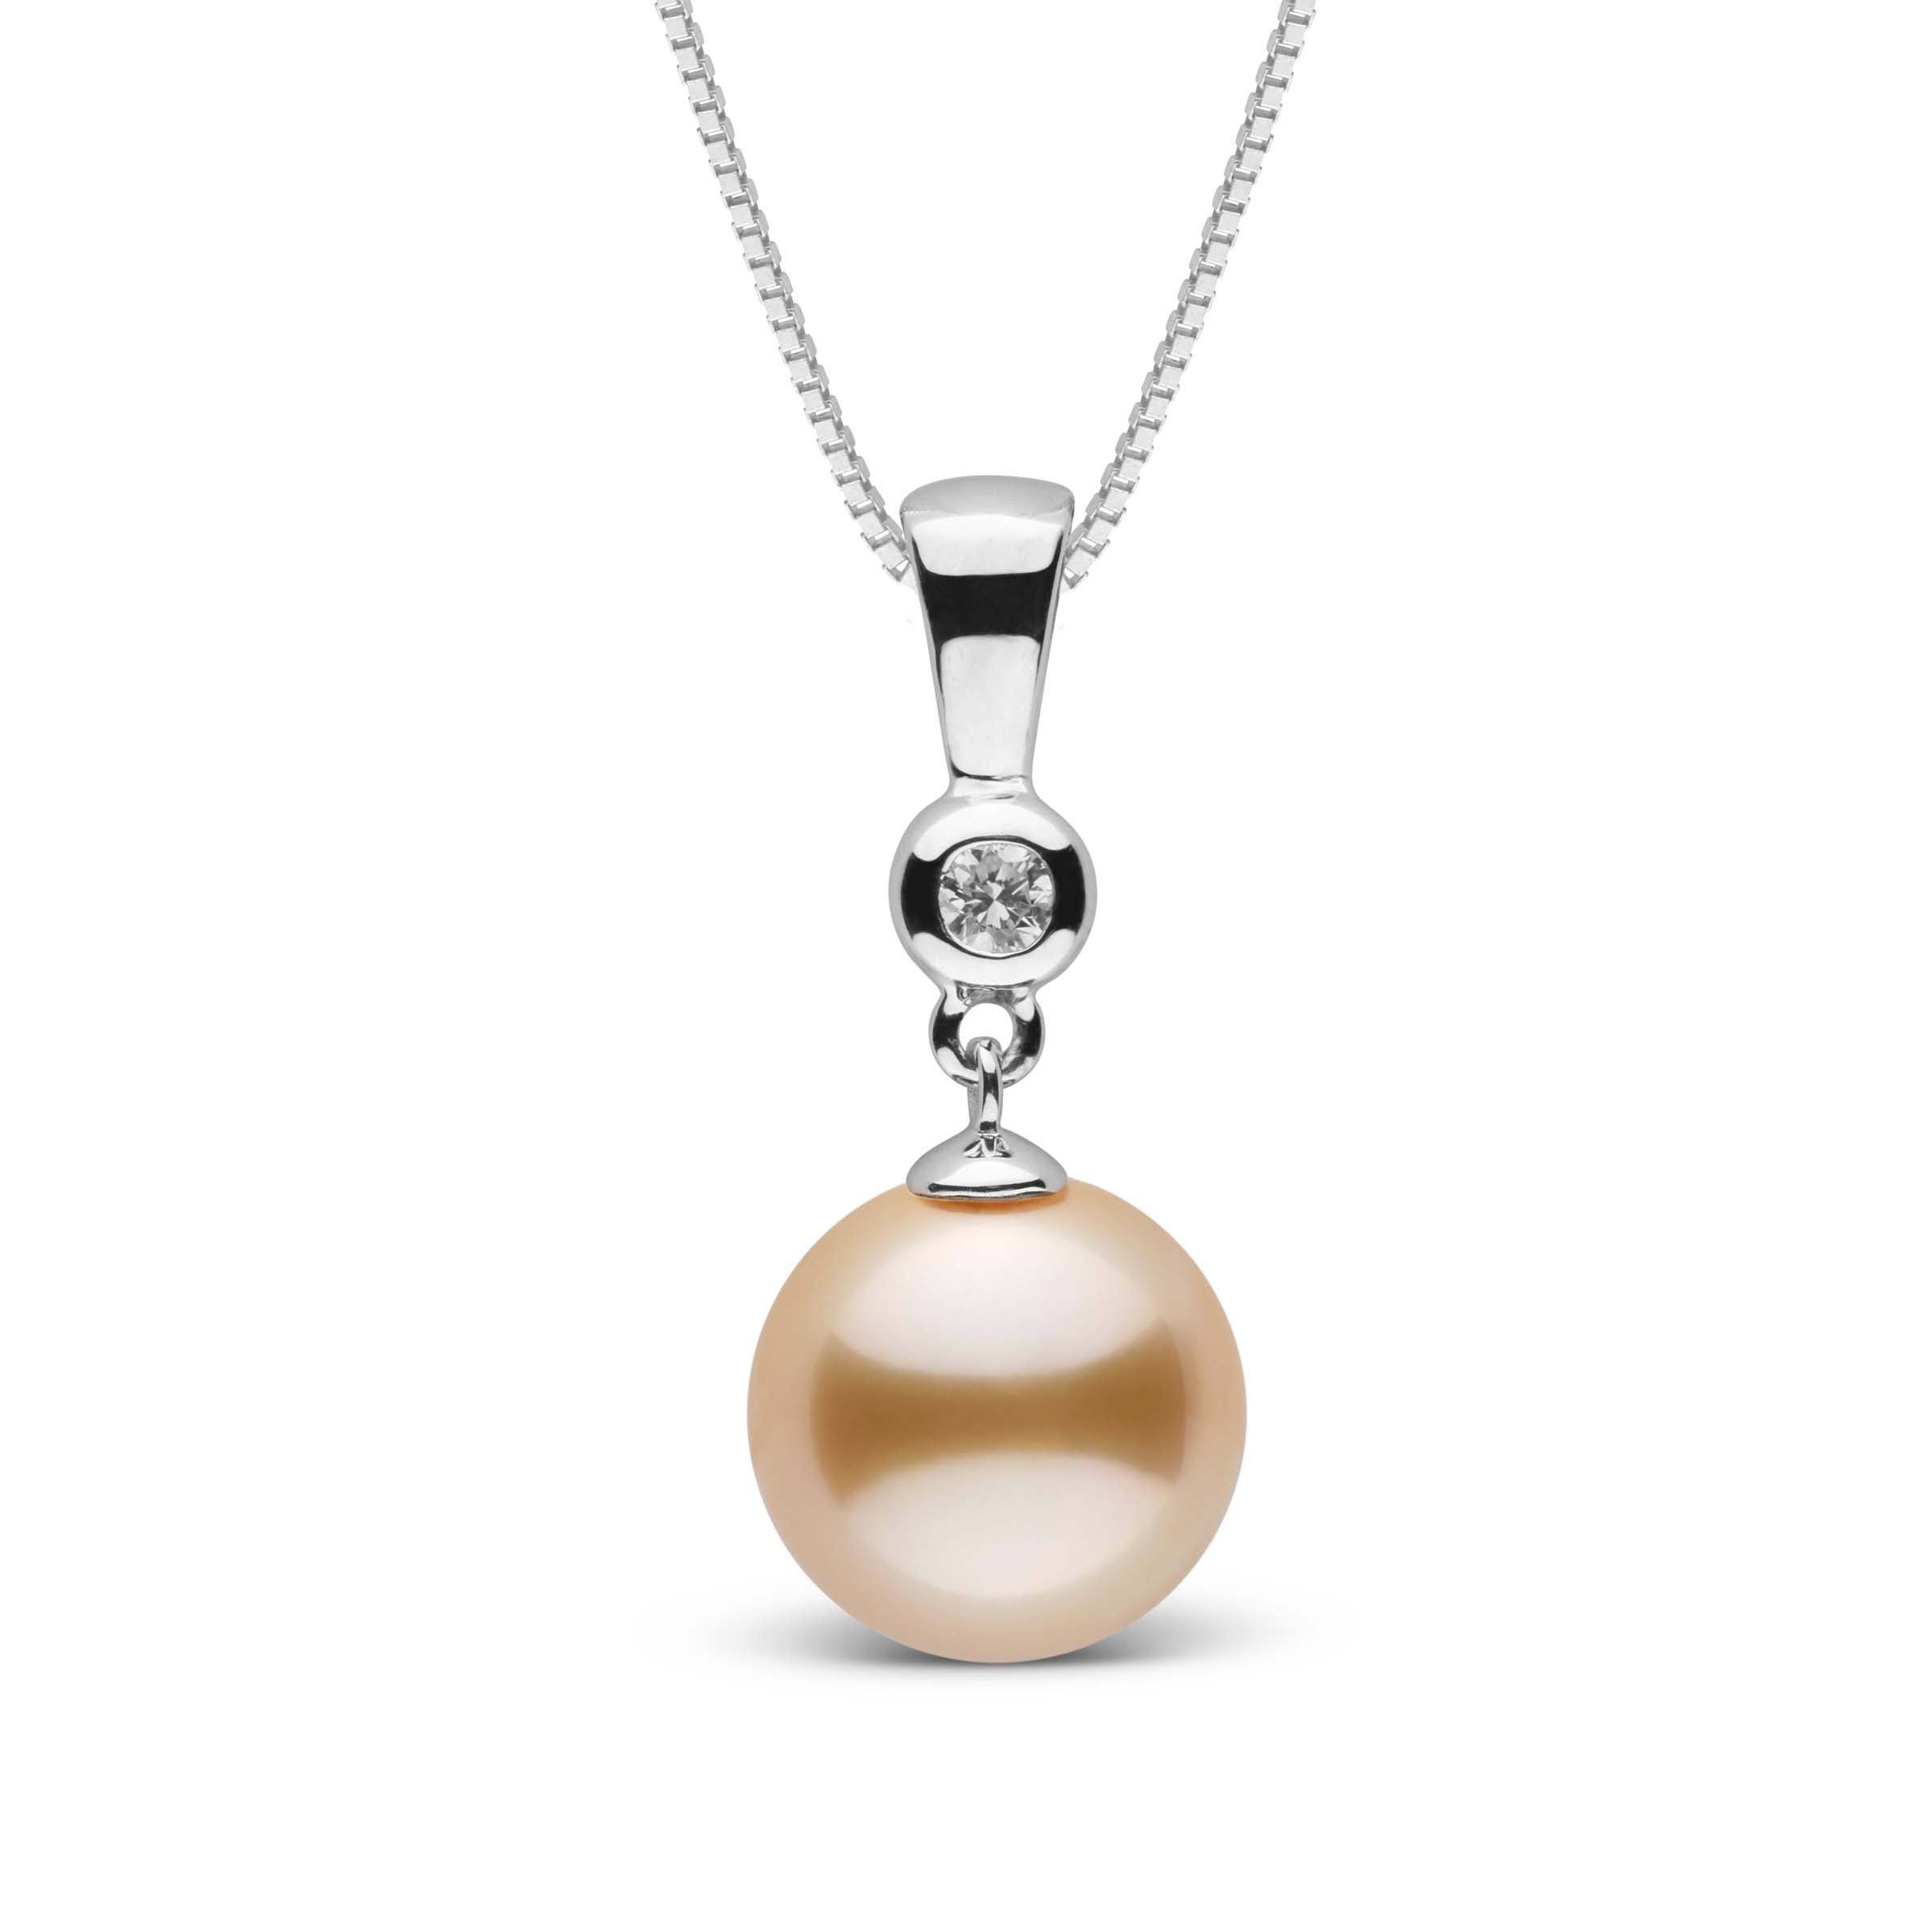 Romantic Collection Golden 9.0-10.0 mm South Sea Pearl & Diamond Pendant